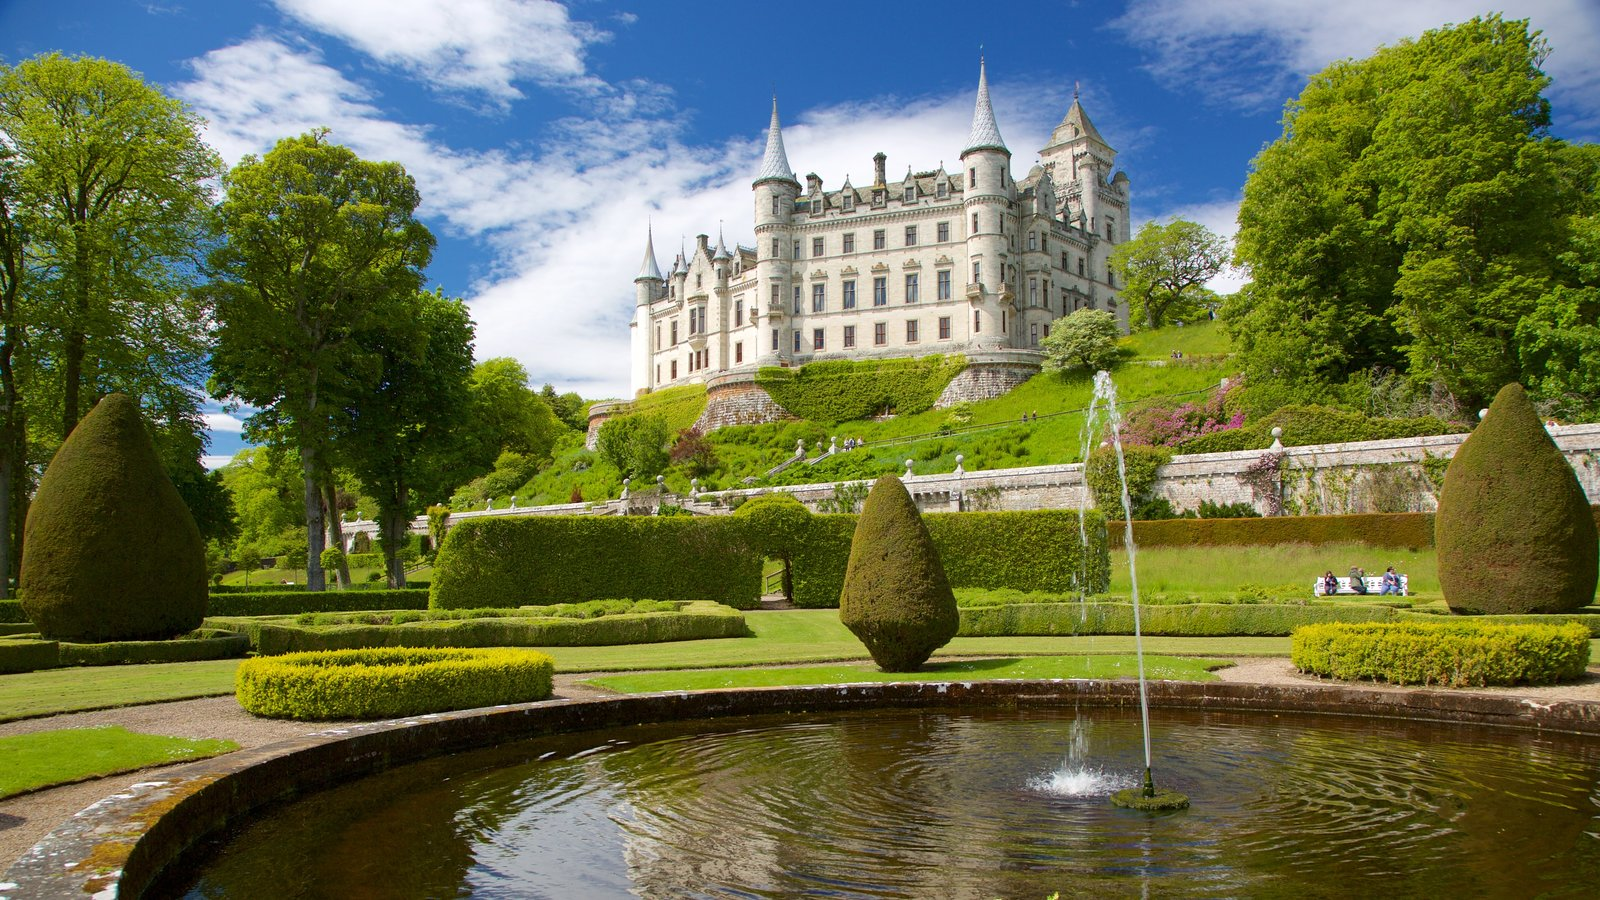 Dunrobin Castle showing a park, a fountain and heritage elements